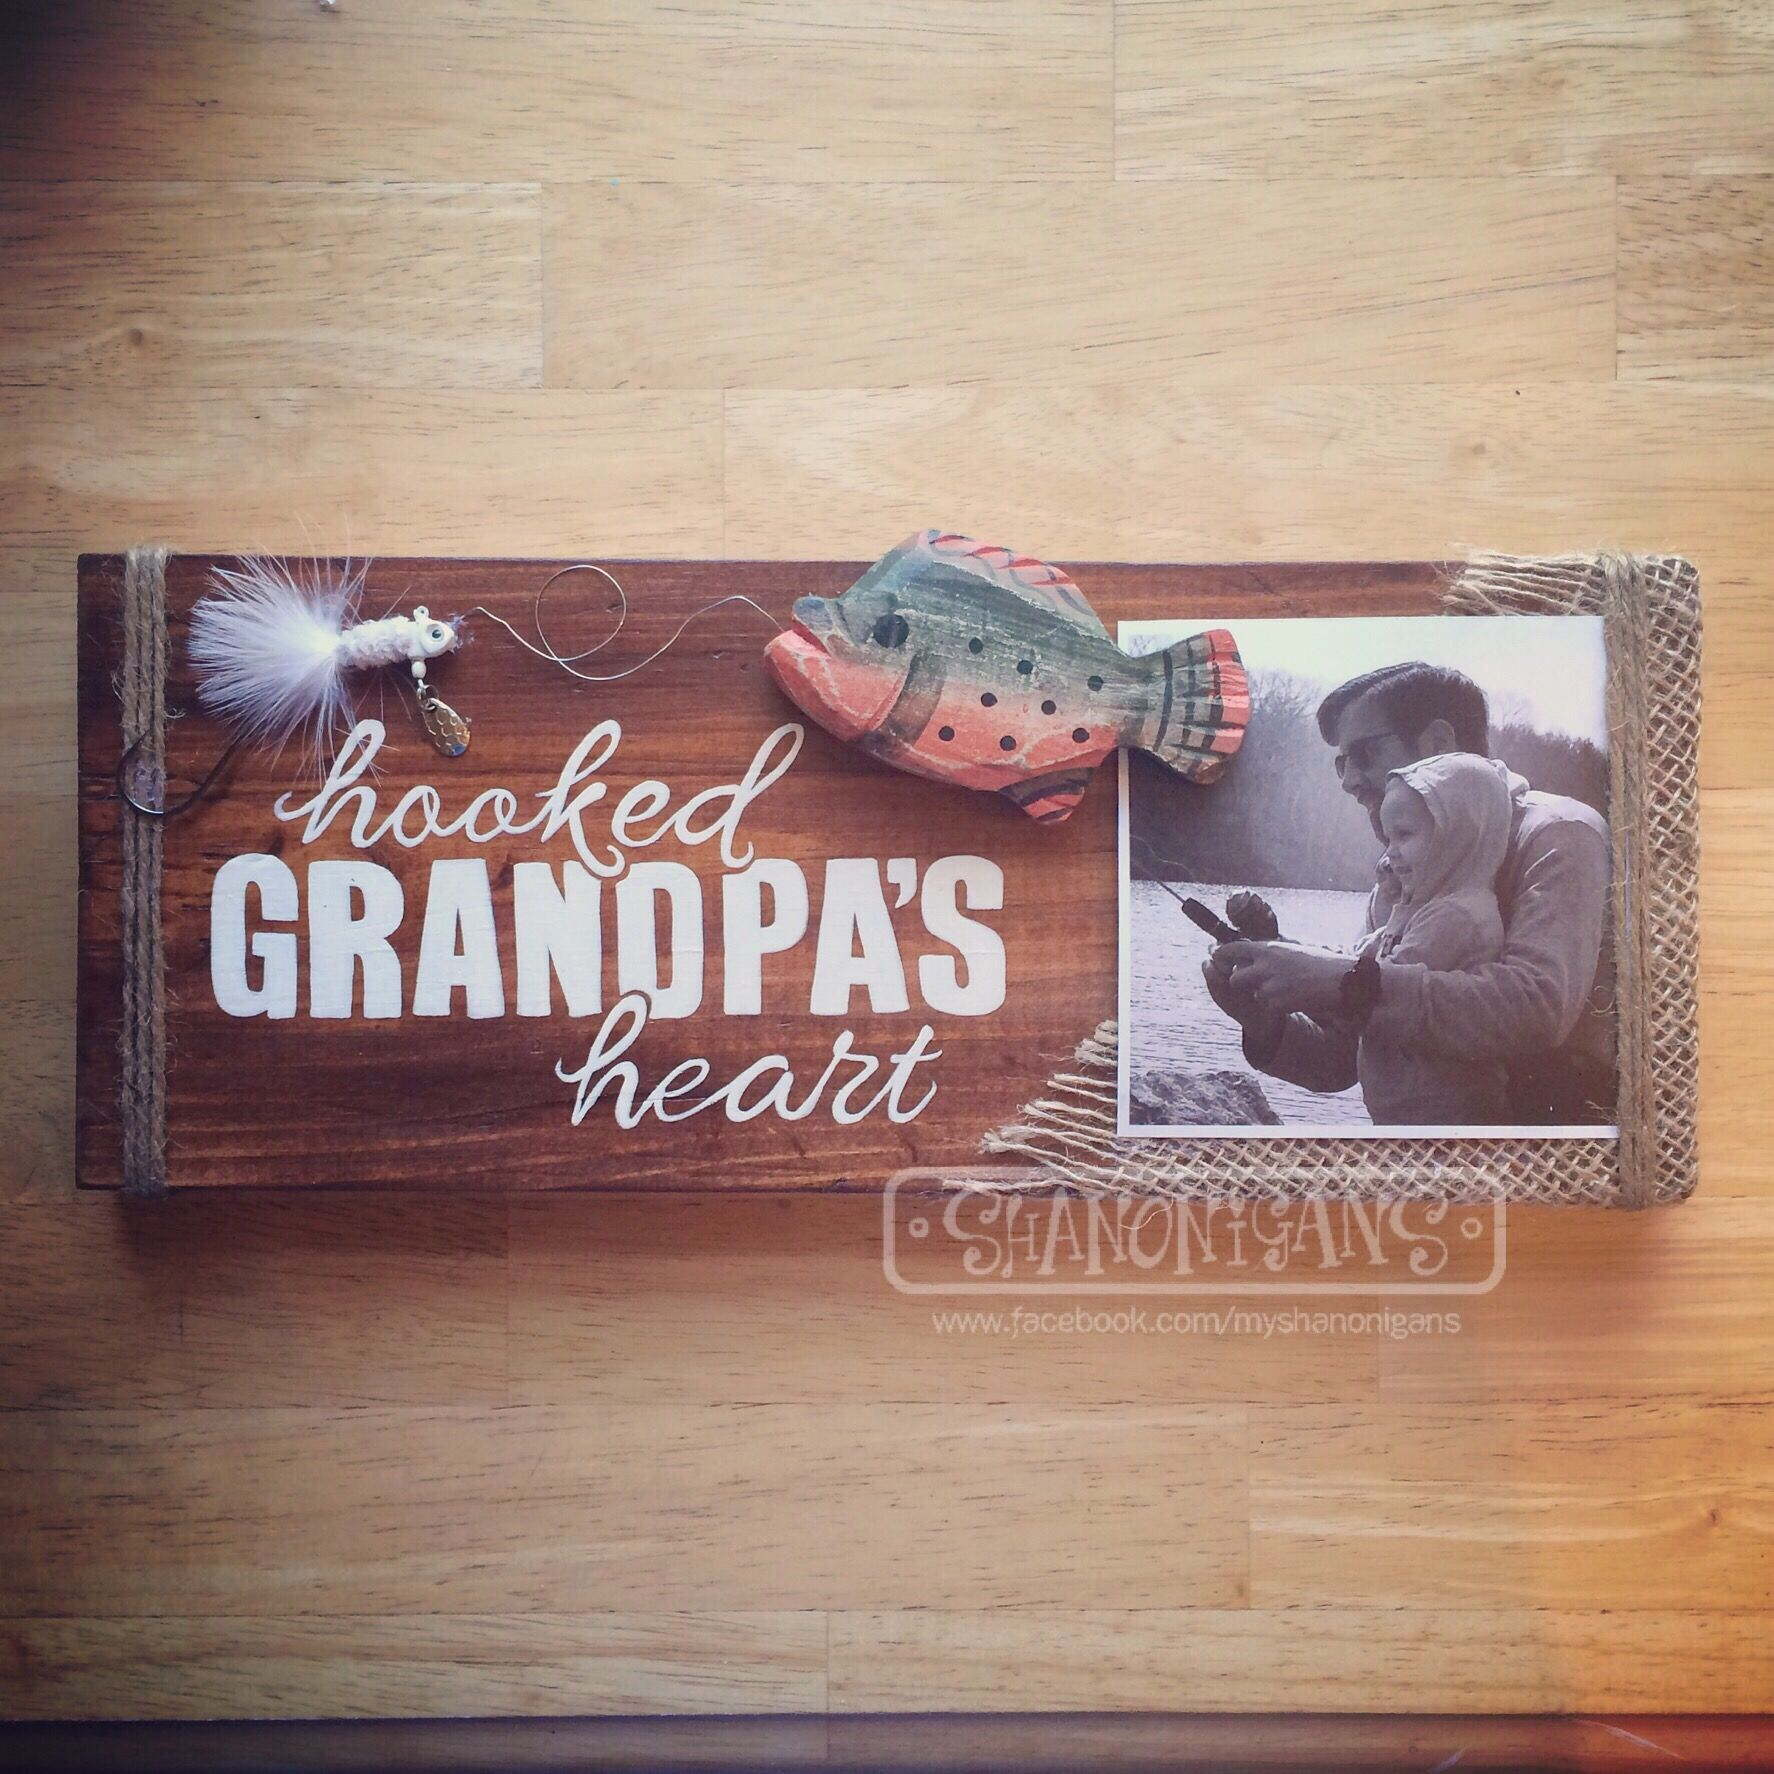 Father's Day is just around the corner. Need gift ideas ...